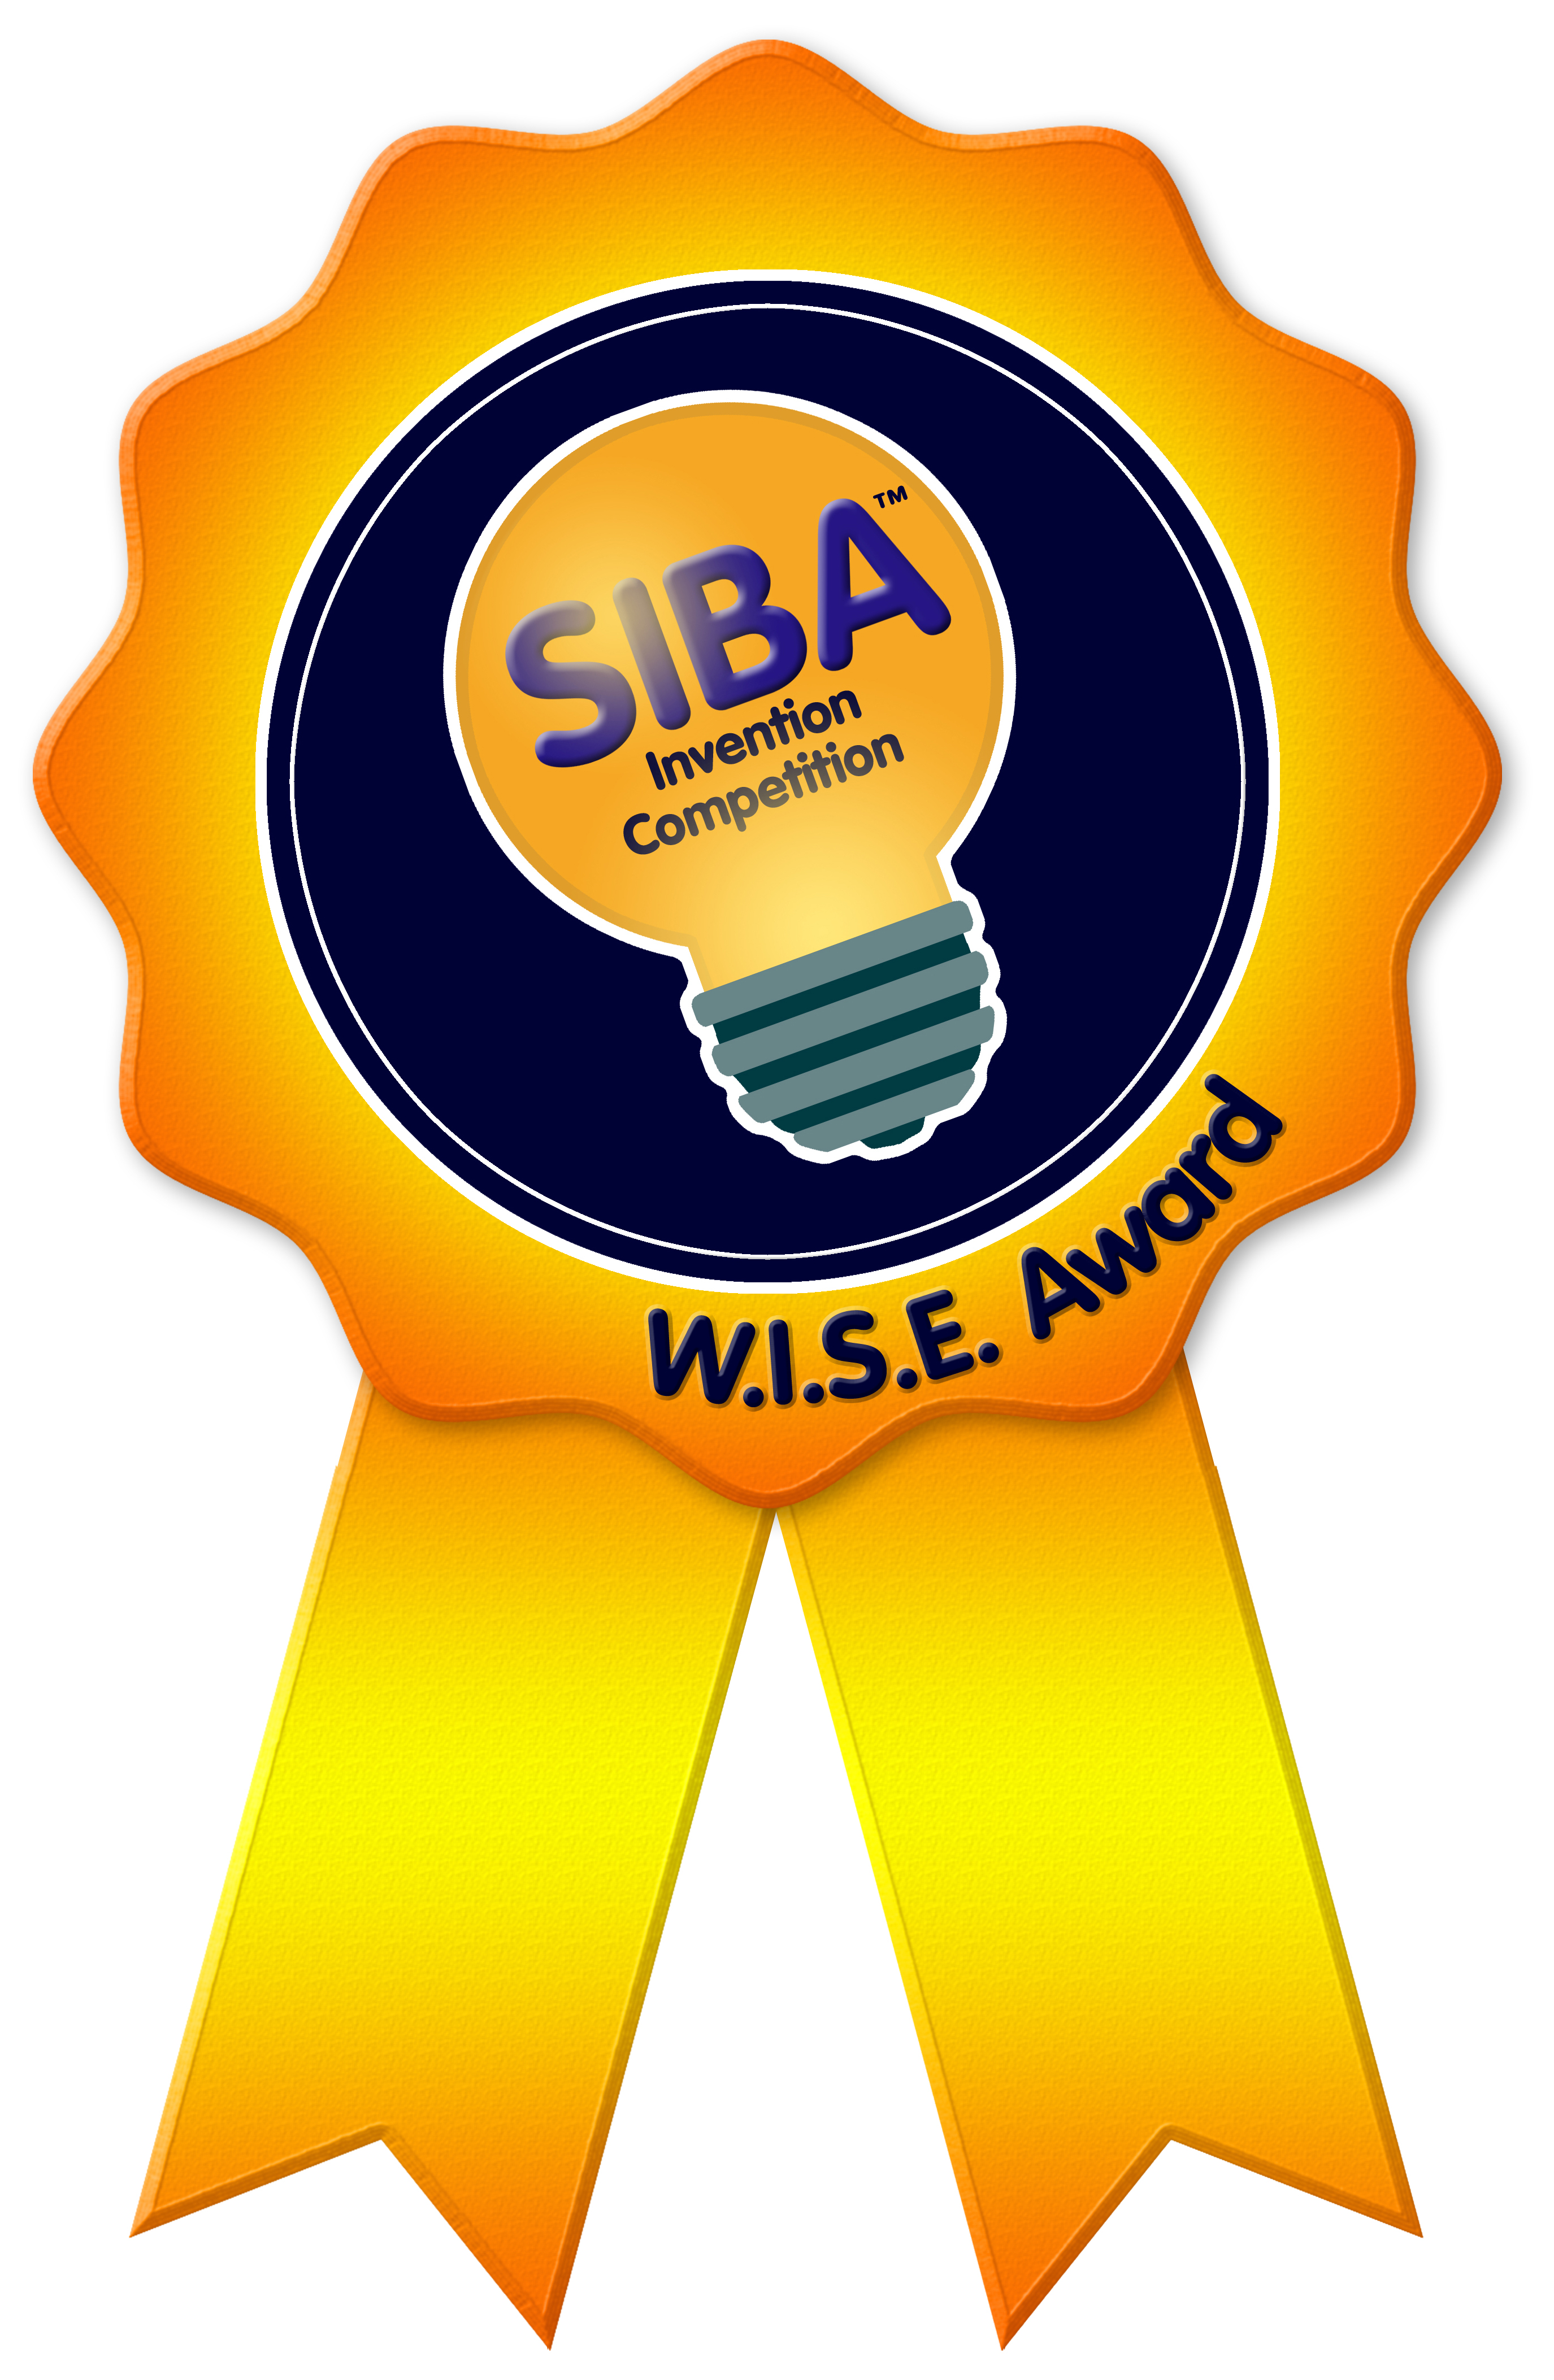 SIBA - Frances O Williamson Inventions in Science Education Award